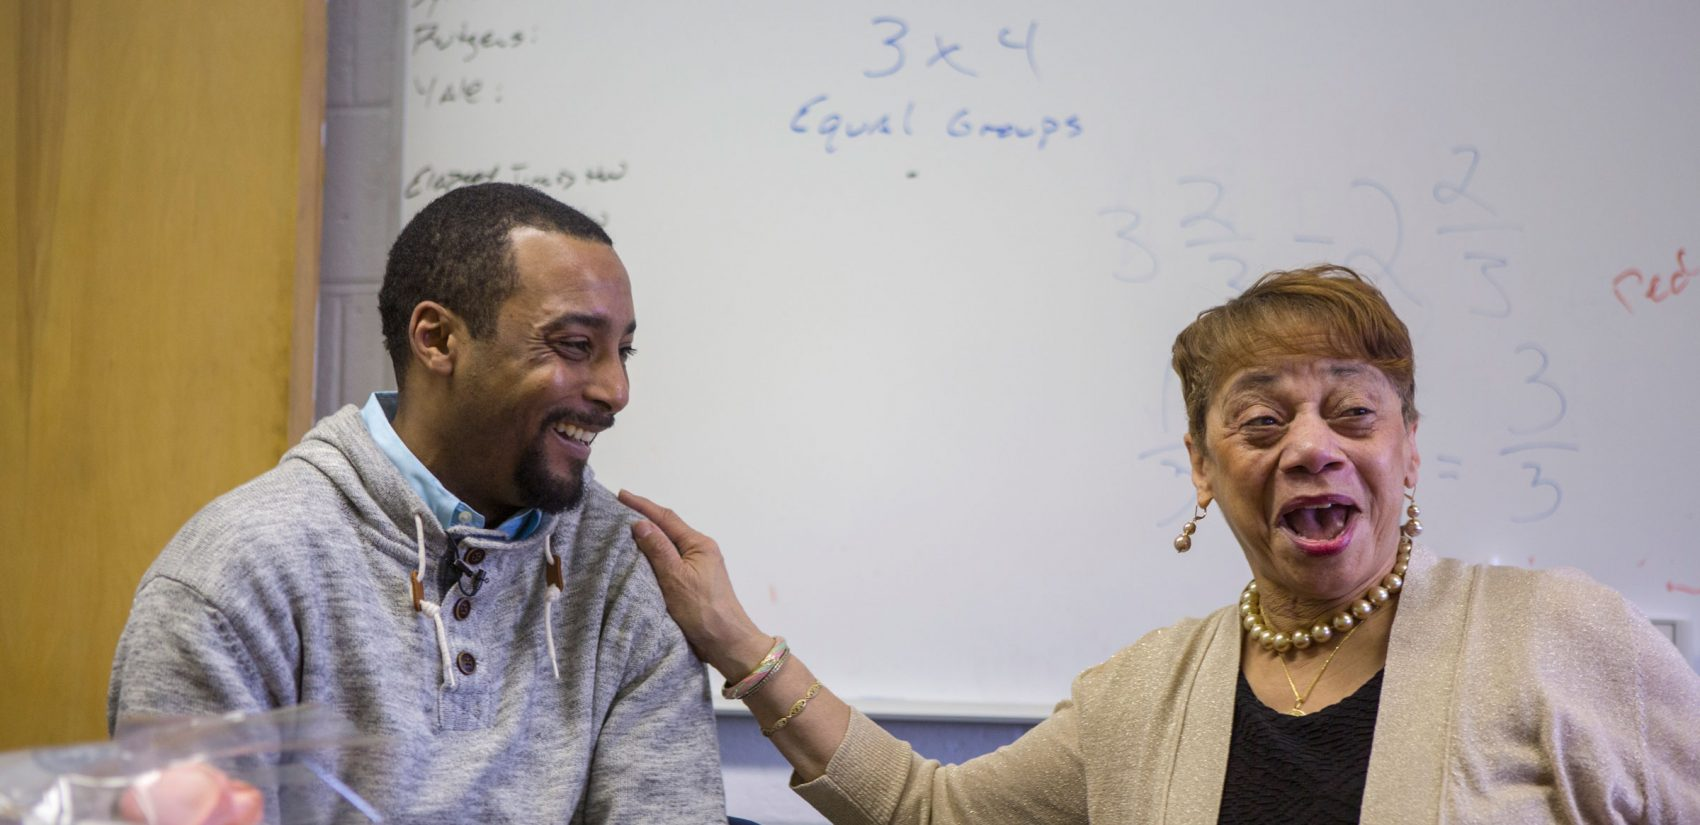 Jovan Weaver and Marie Brown, who was his tenth-grade geometry teacher at Abraham Lincoln High School. (Jessica Kourkounis/WHYY)